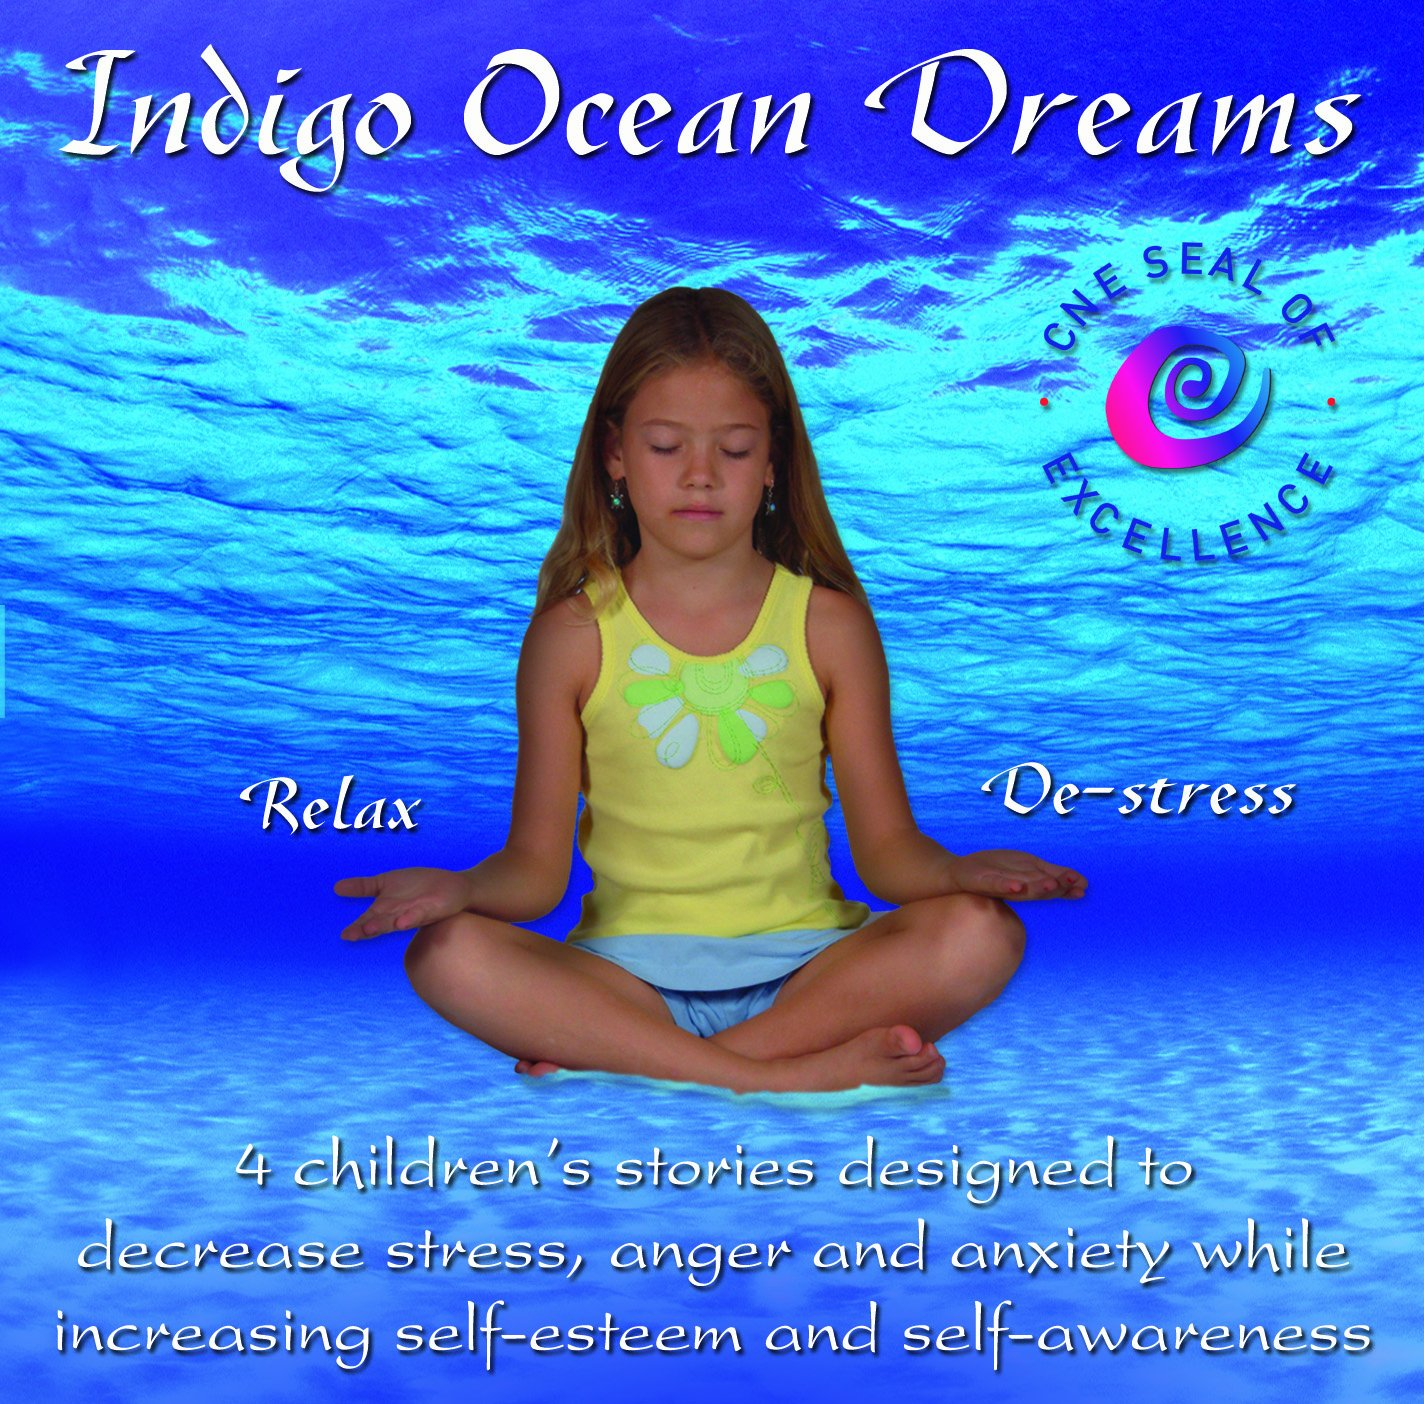 Oceane Dreams Model Image Anoword Search Video Blog Filmvz Portal